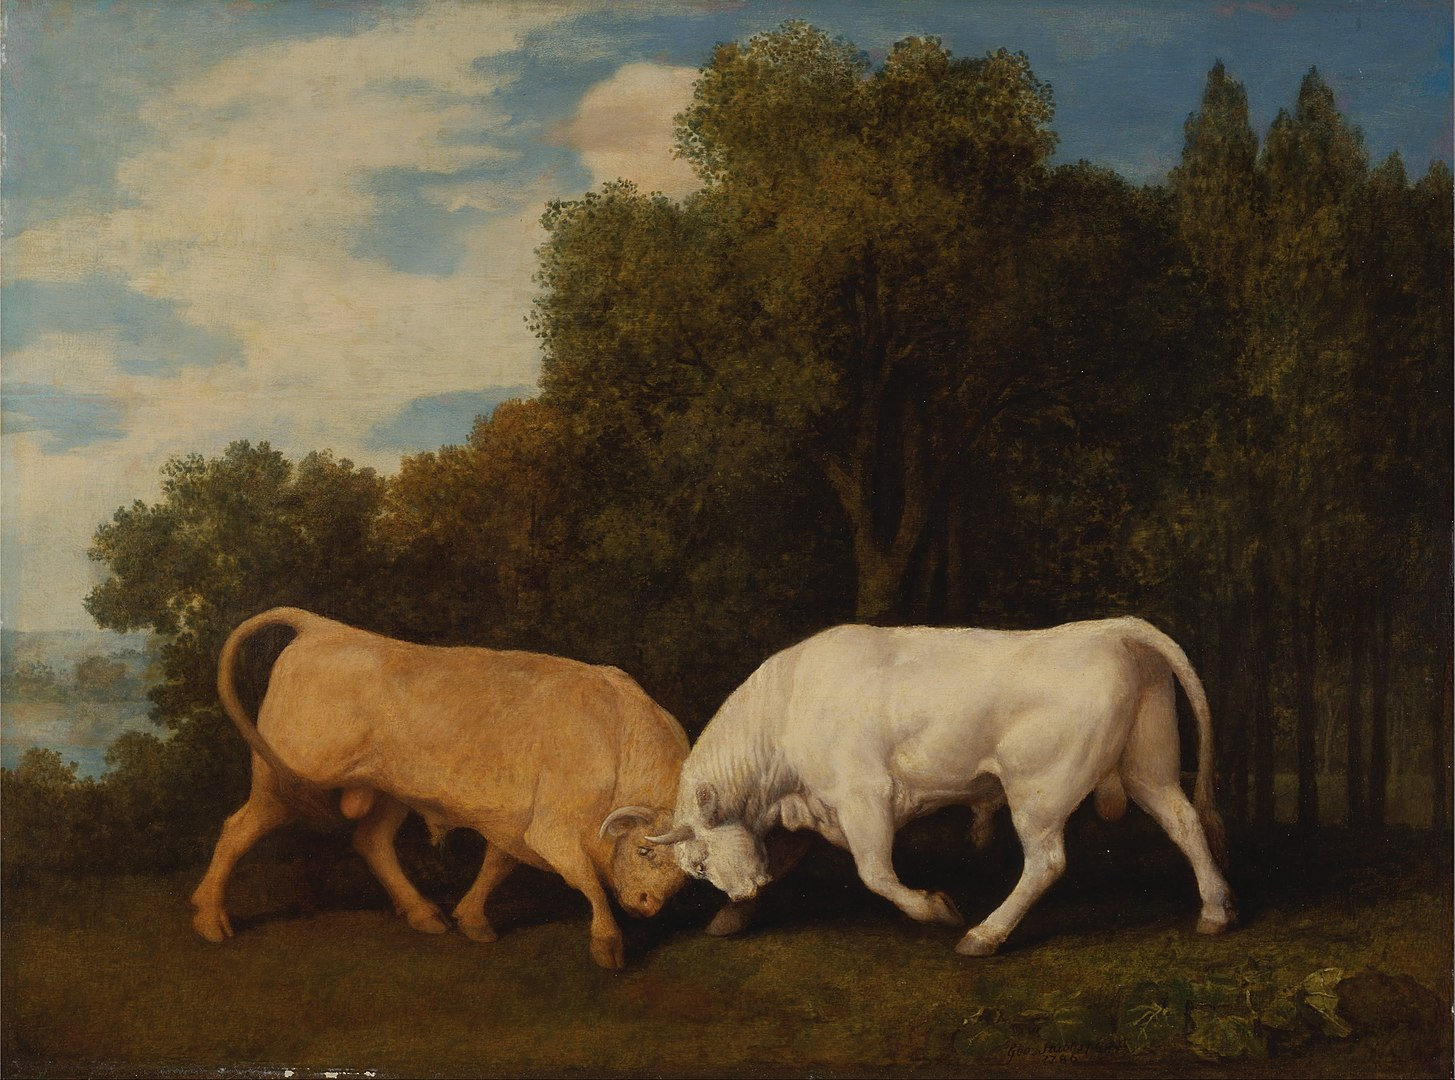 Bulls locking horns. By George Stubbs - qgF1R5N_4f0wlQ at Google Cultural Institute maximum zoom level, Public Domain, https://commons.wikimedia.org/w/index.php?curid=22007953